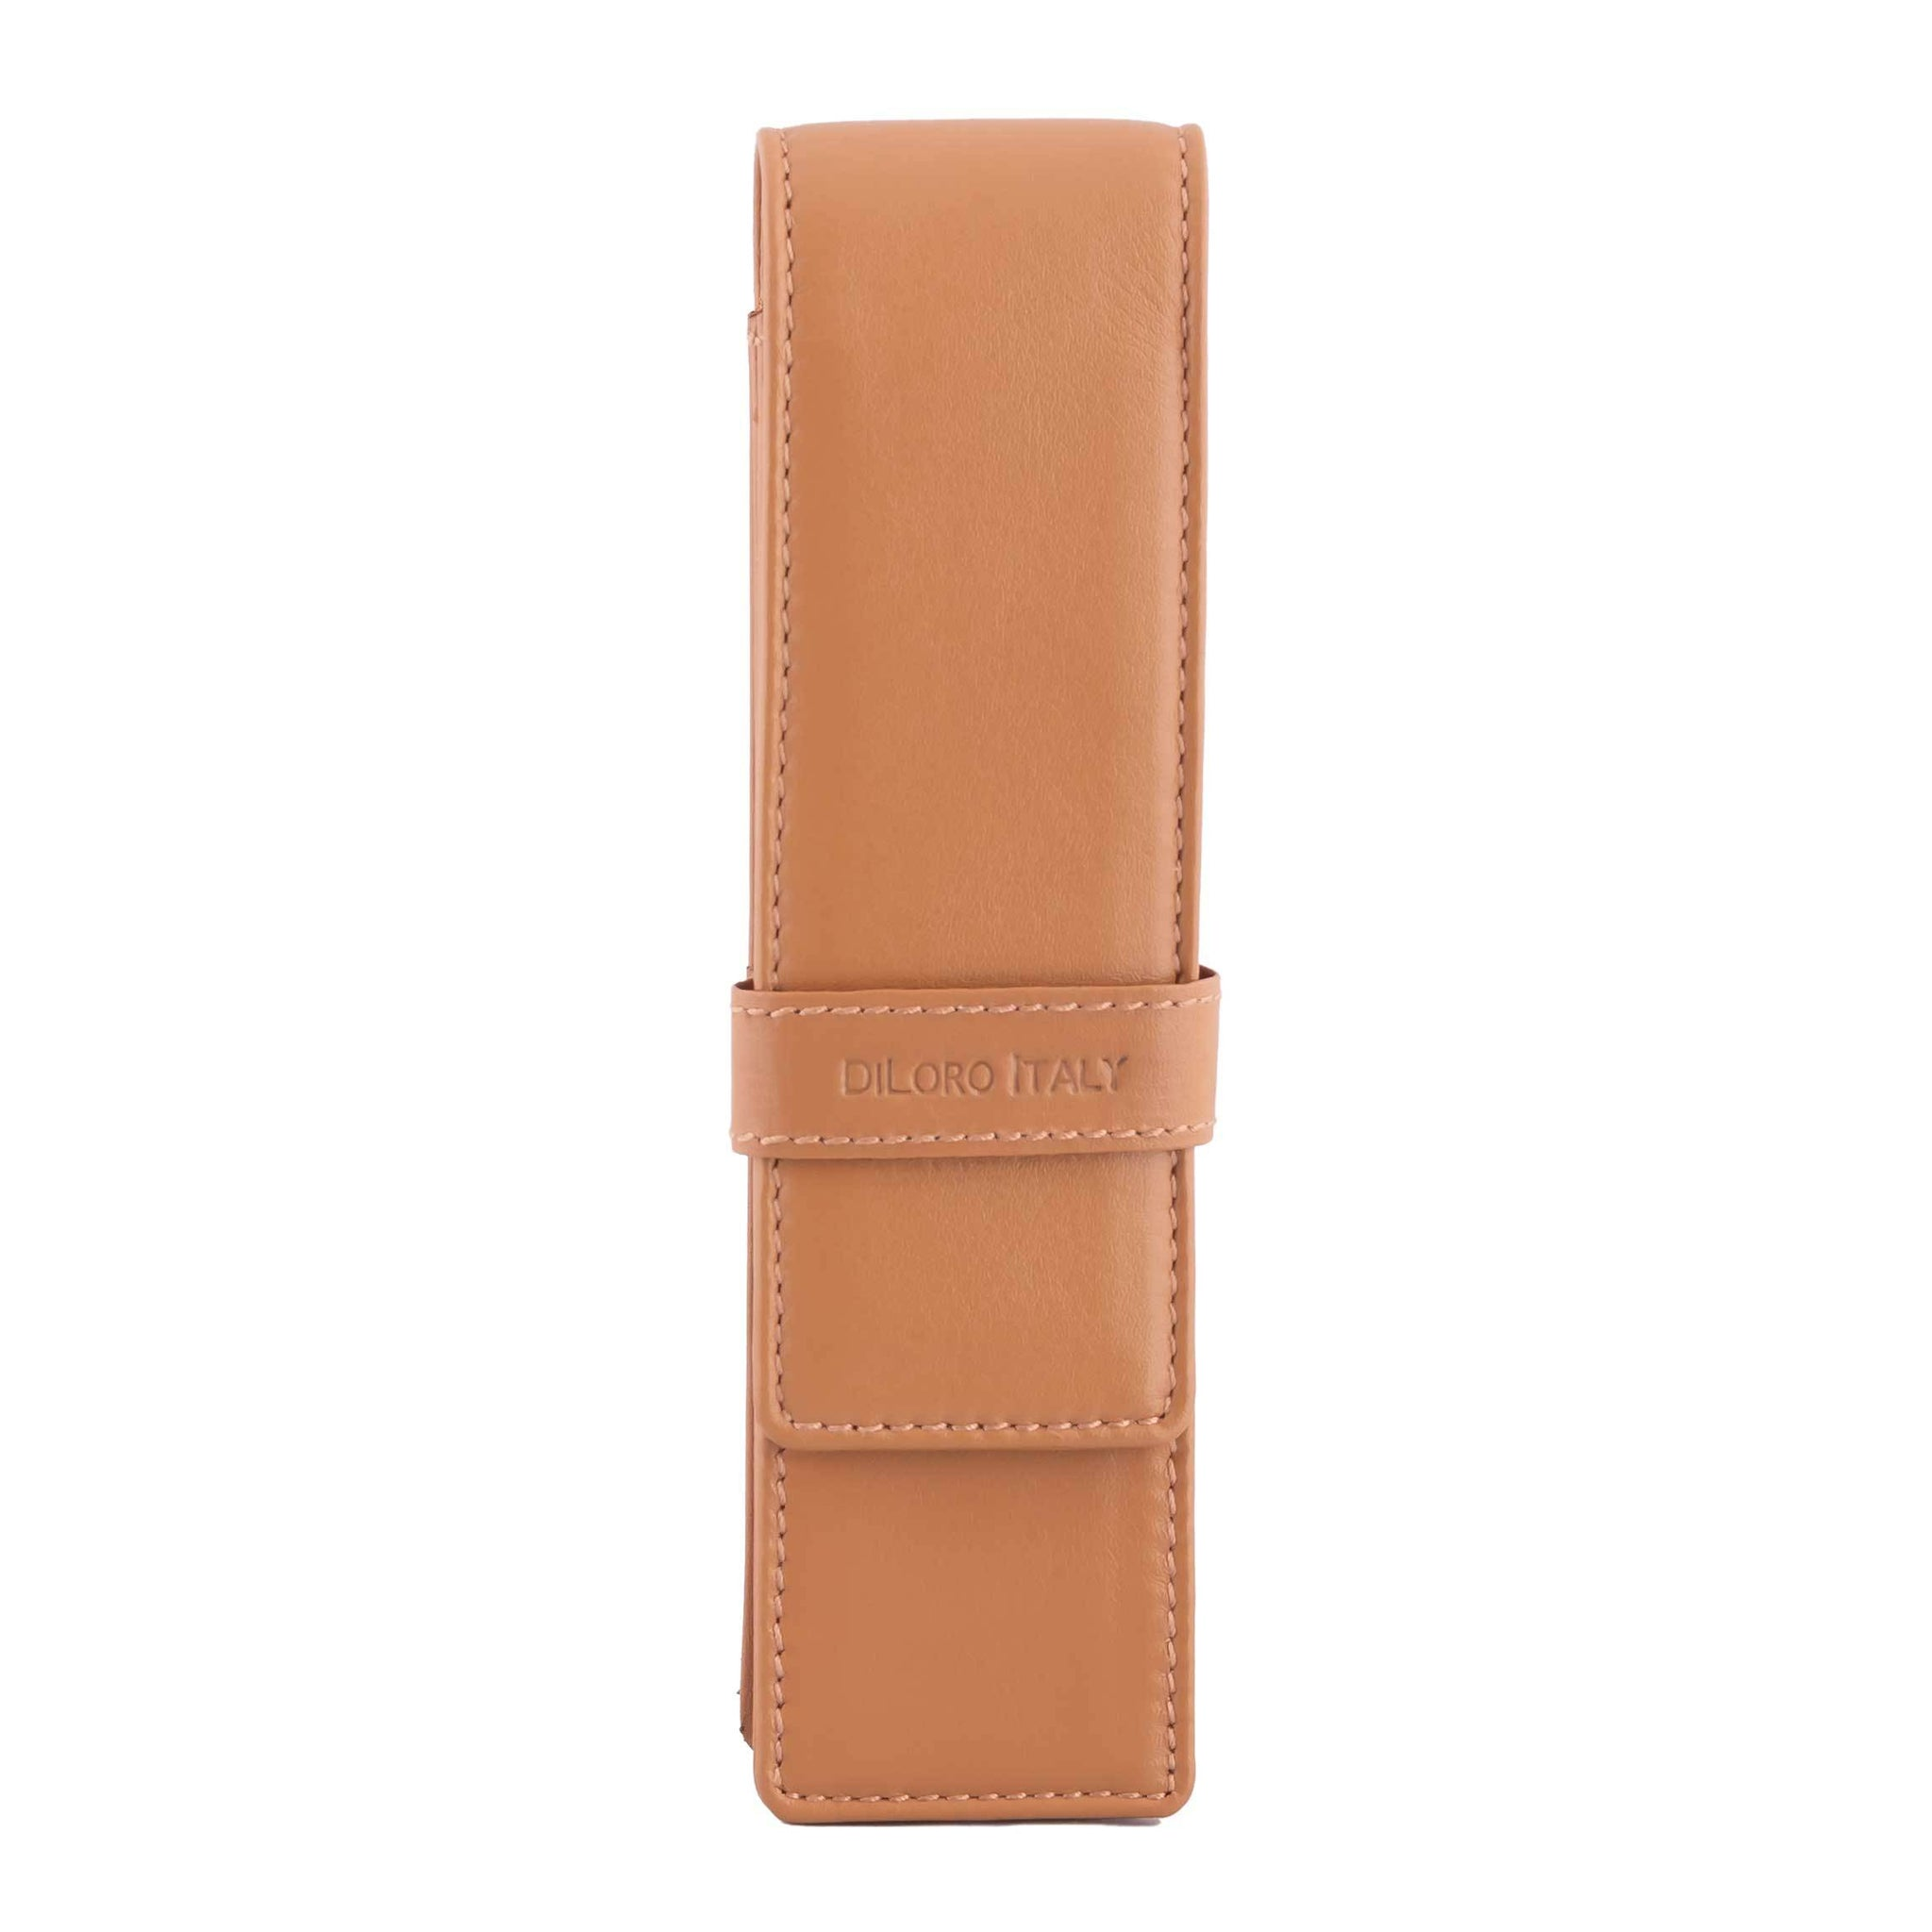 DiLoro Double Pen Case Holder in Top Quality, Full Grain Nappa Leather - V Tan